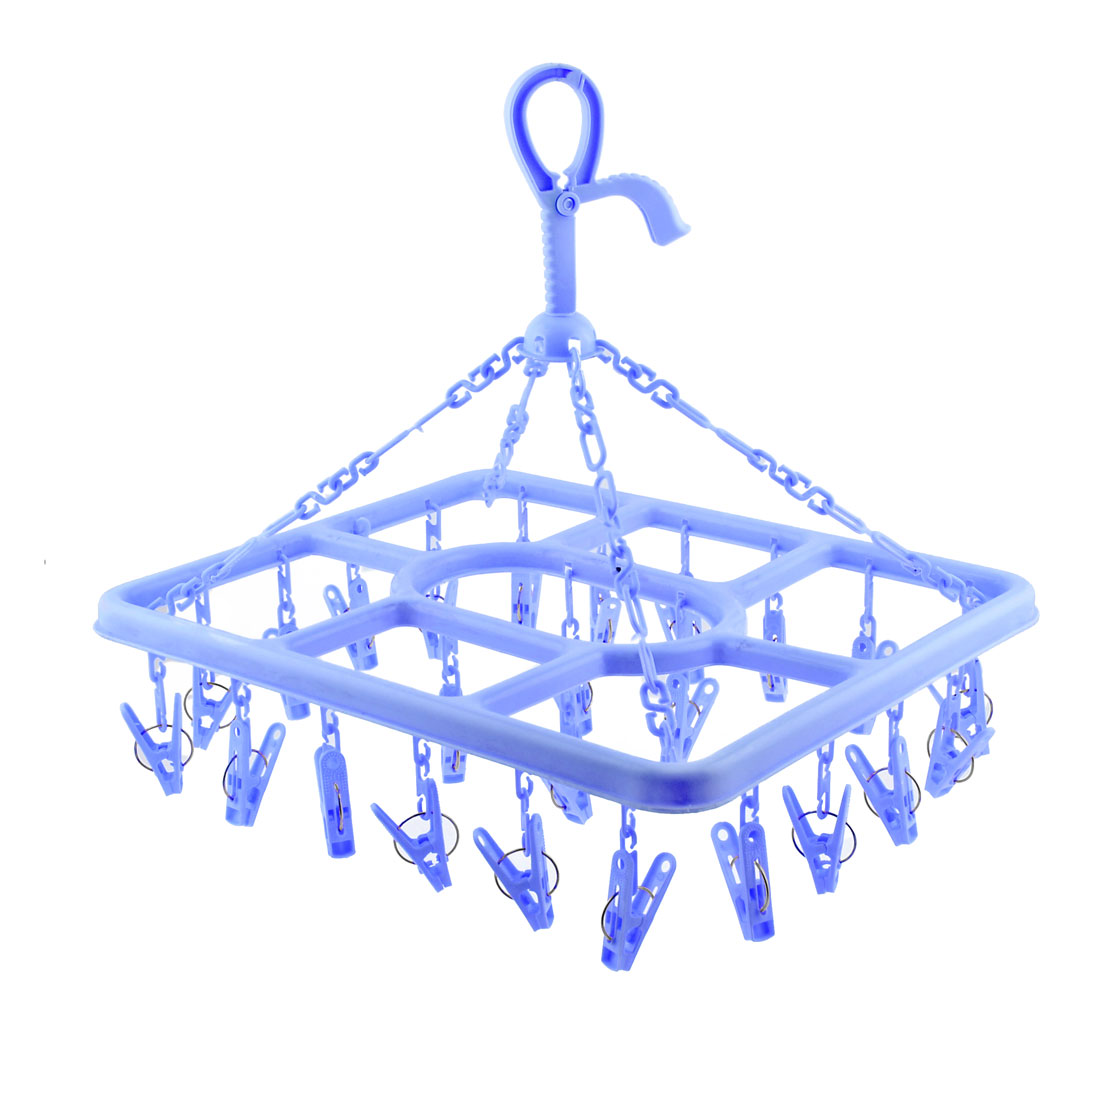 Blue Plastic 24 Clamps Cloth Socks Towel Pants Rotating Clotheshorse Drying Rack